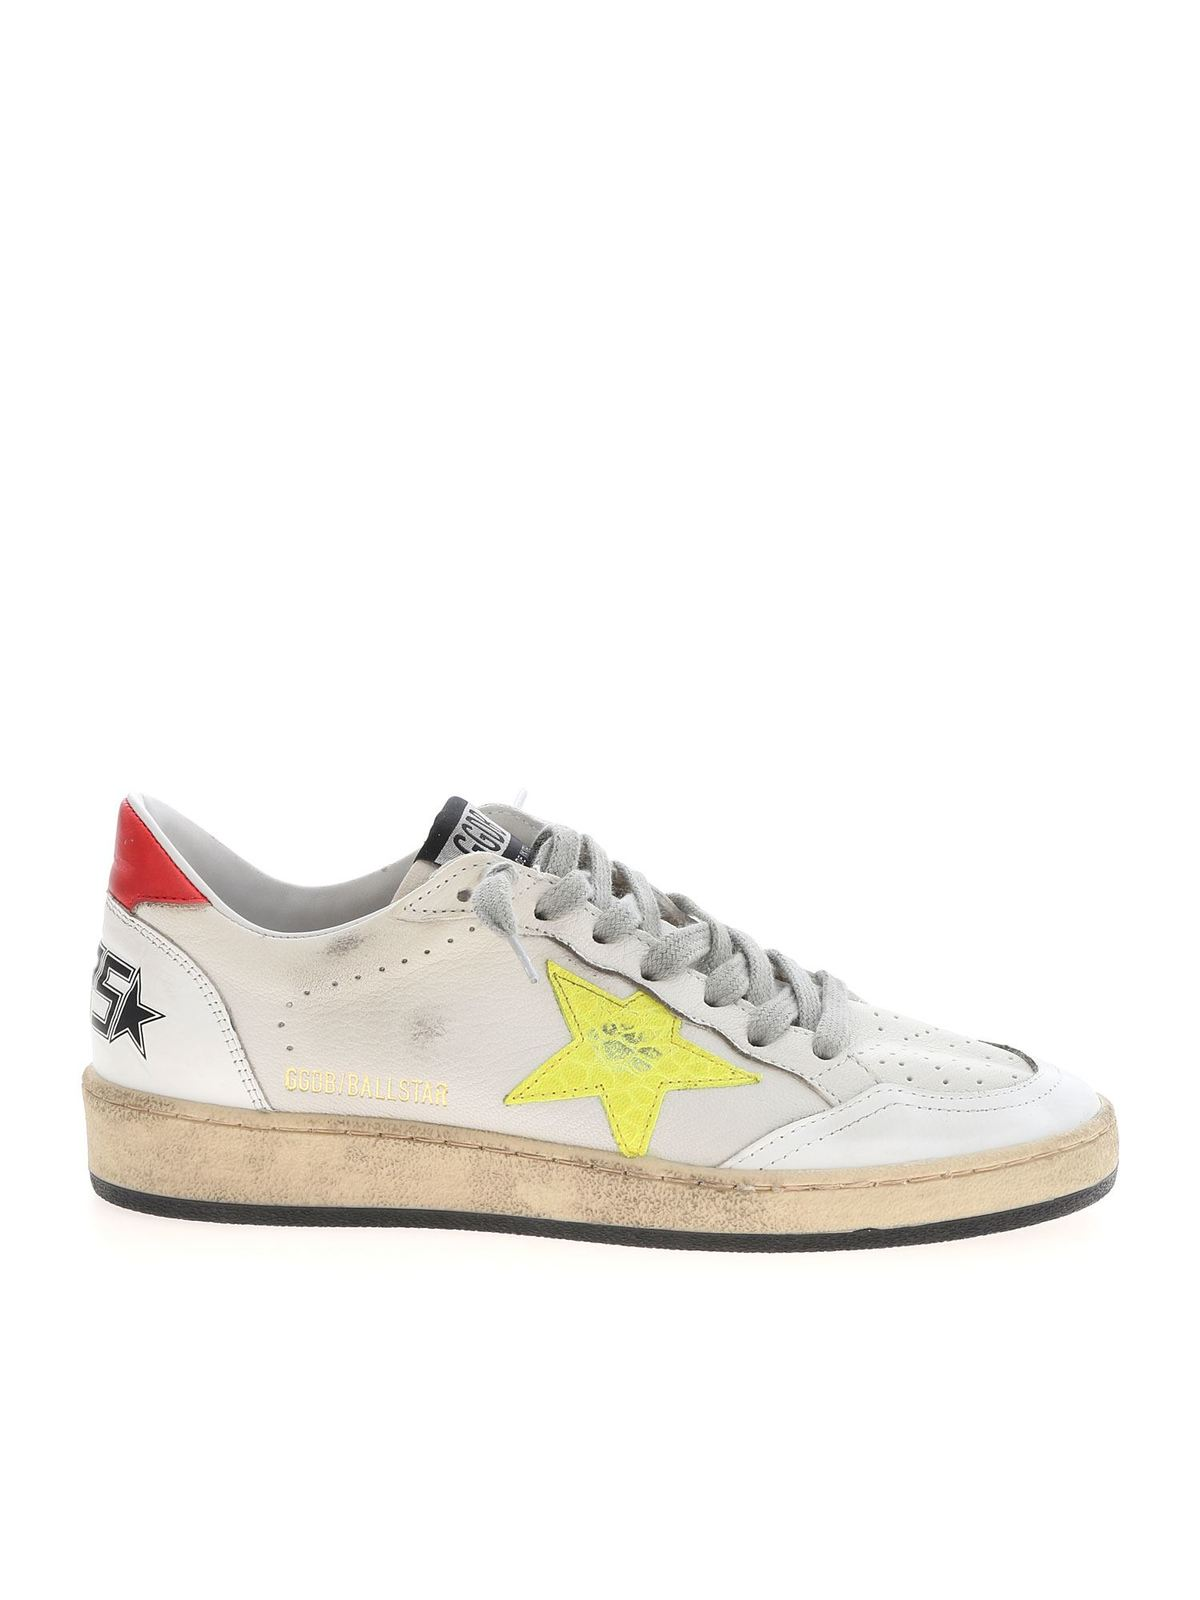 GOLDEN GOOSE BALL STAR SNEAKERS IN WHITE RED AND YELLOW